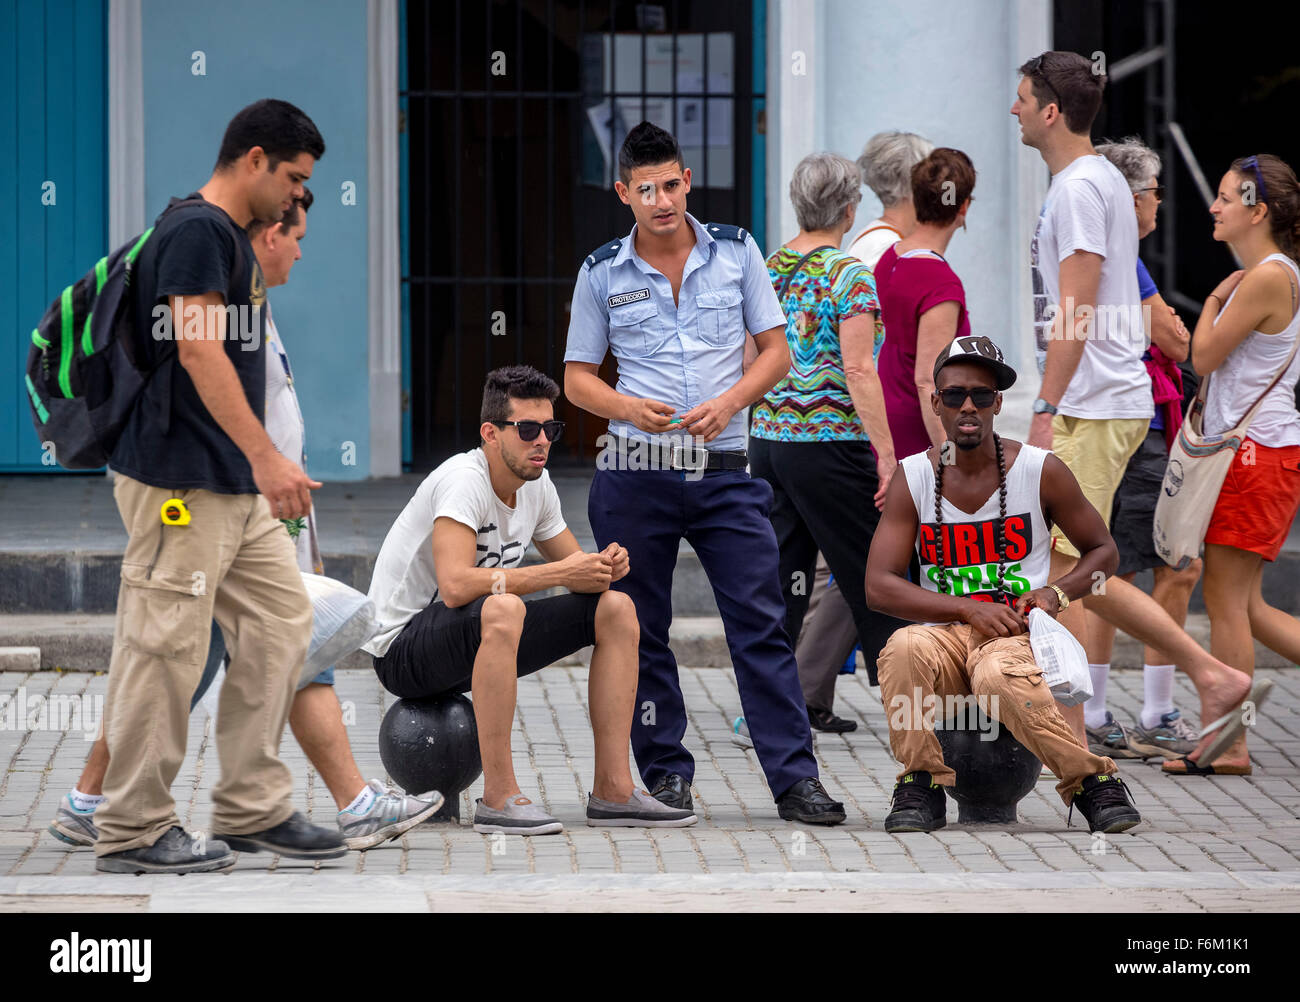 young Canadian policeman with adolescents, young Cubans in a marketplace, Street Scene, La Habana, Cuba, Caribbean, - Stock Image